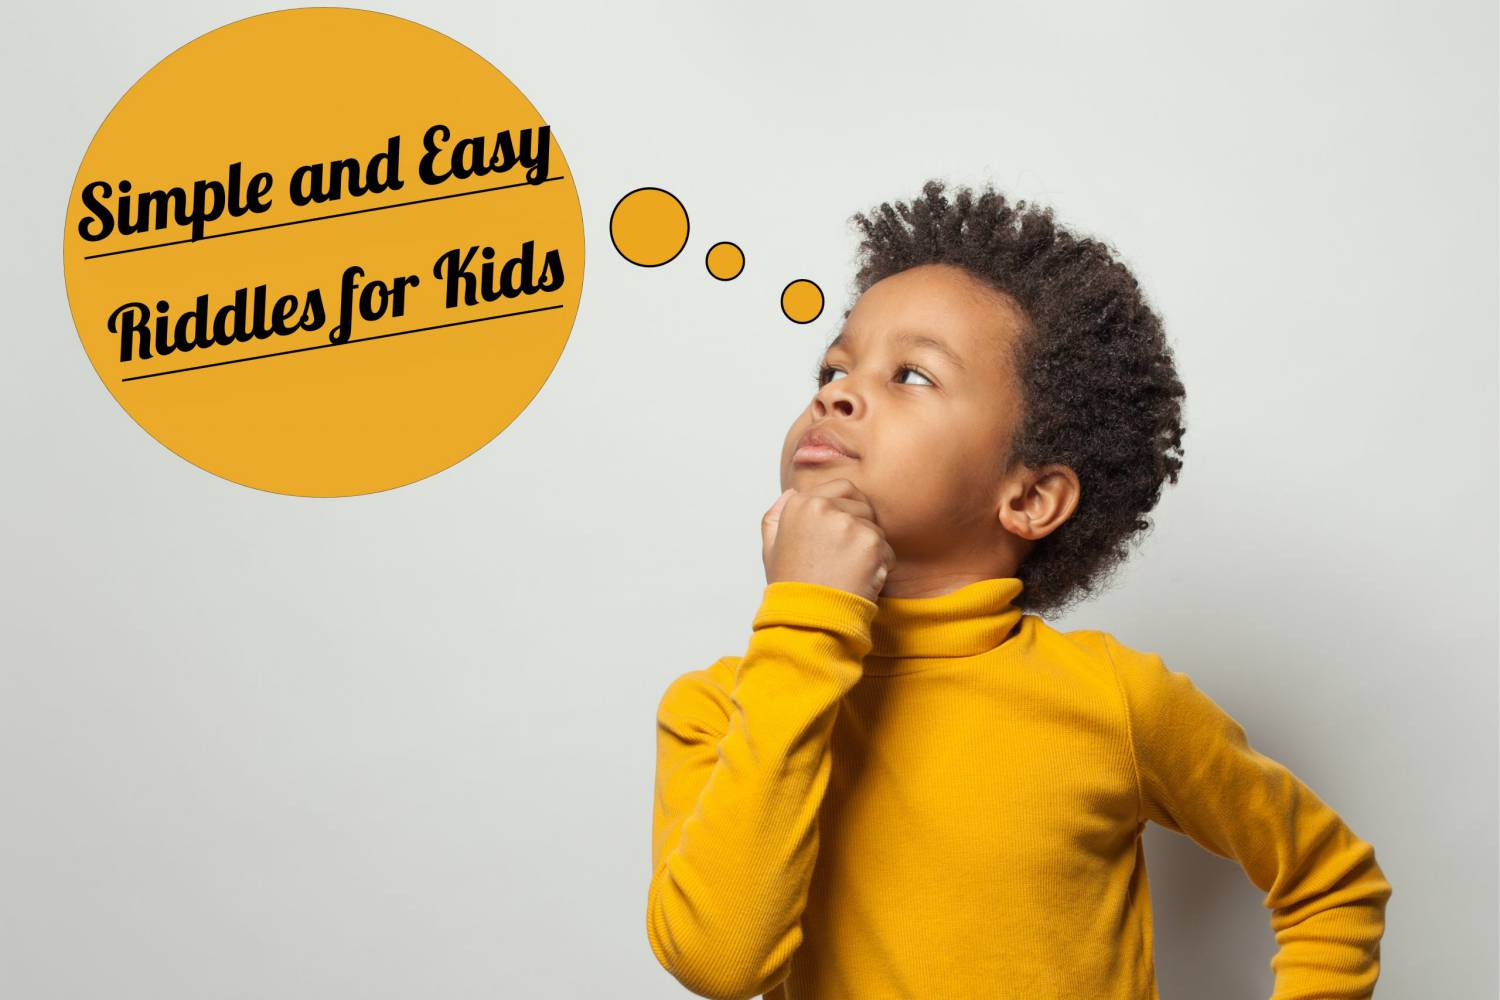 Simple and Easy Riddles for Kids